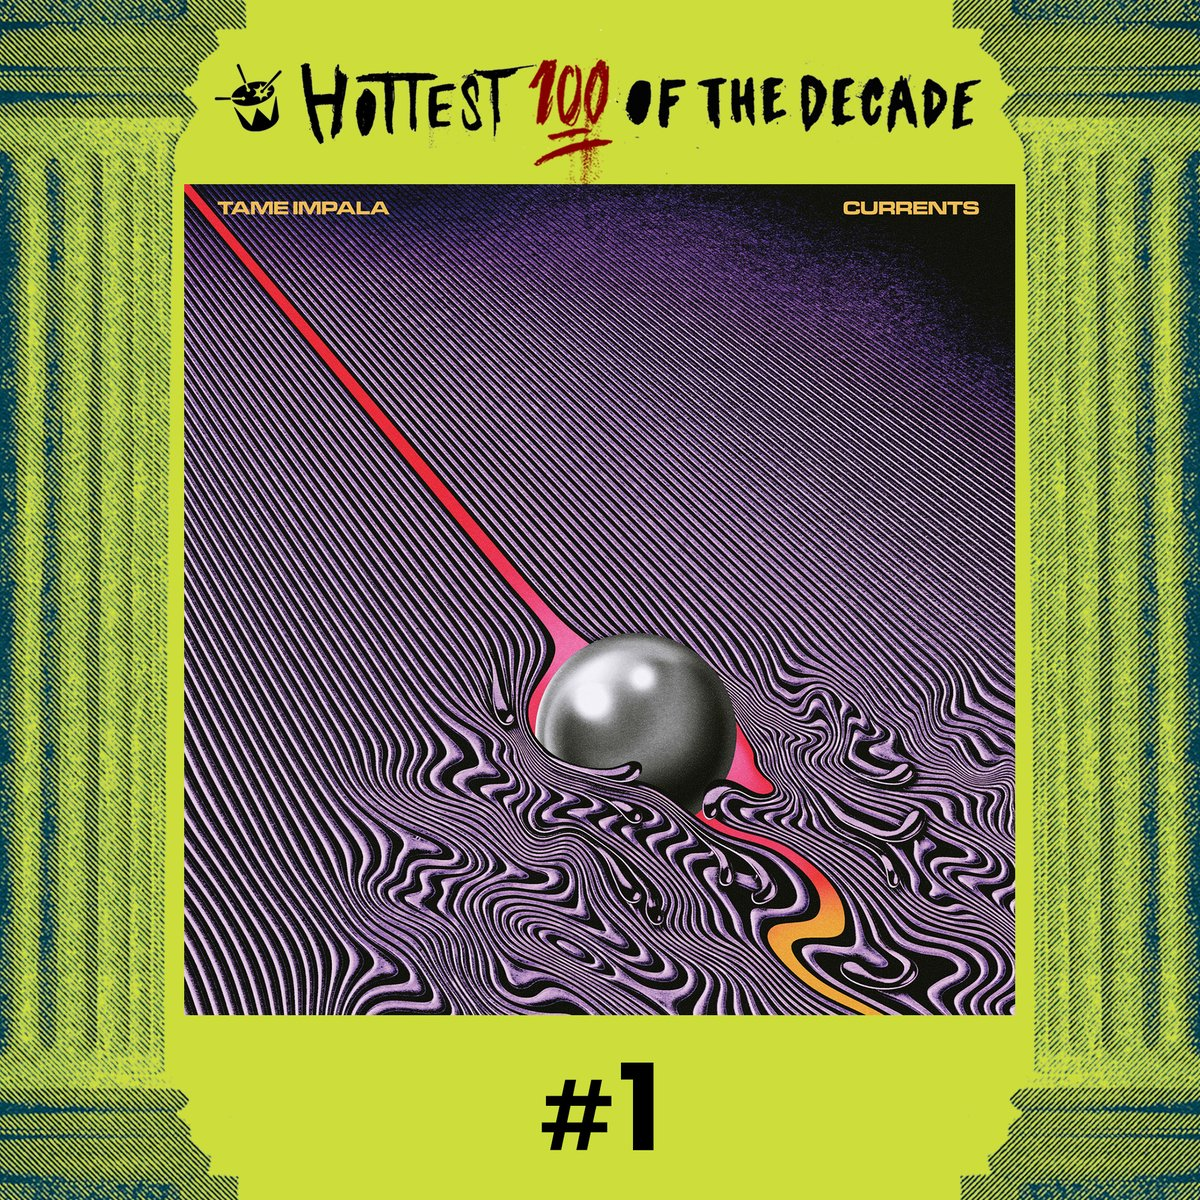 #1 @tameimpala - 'The Less I Know The Better' #Hottest100